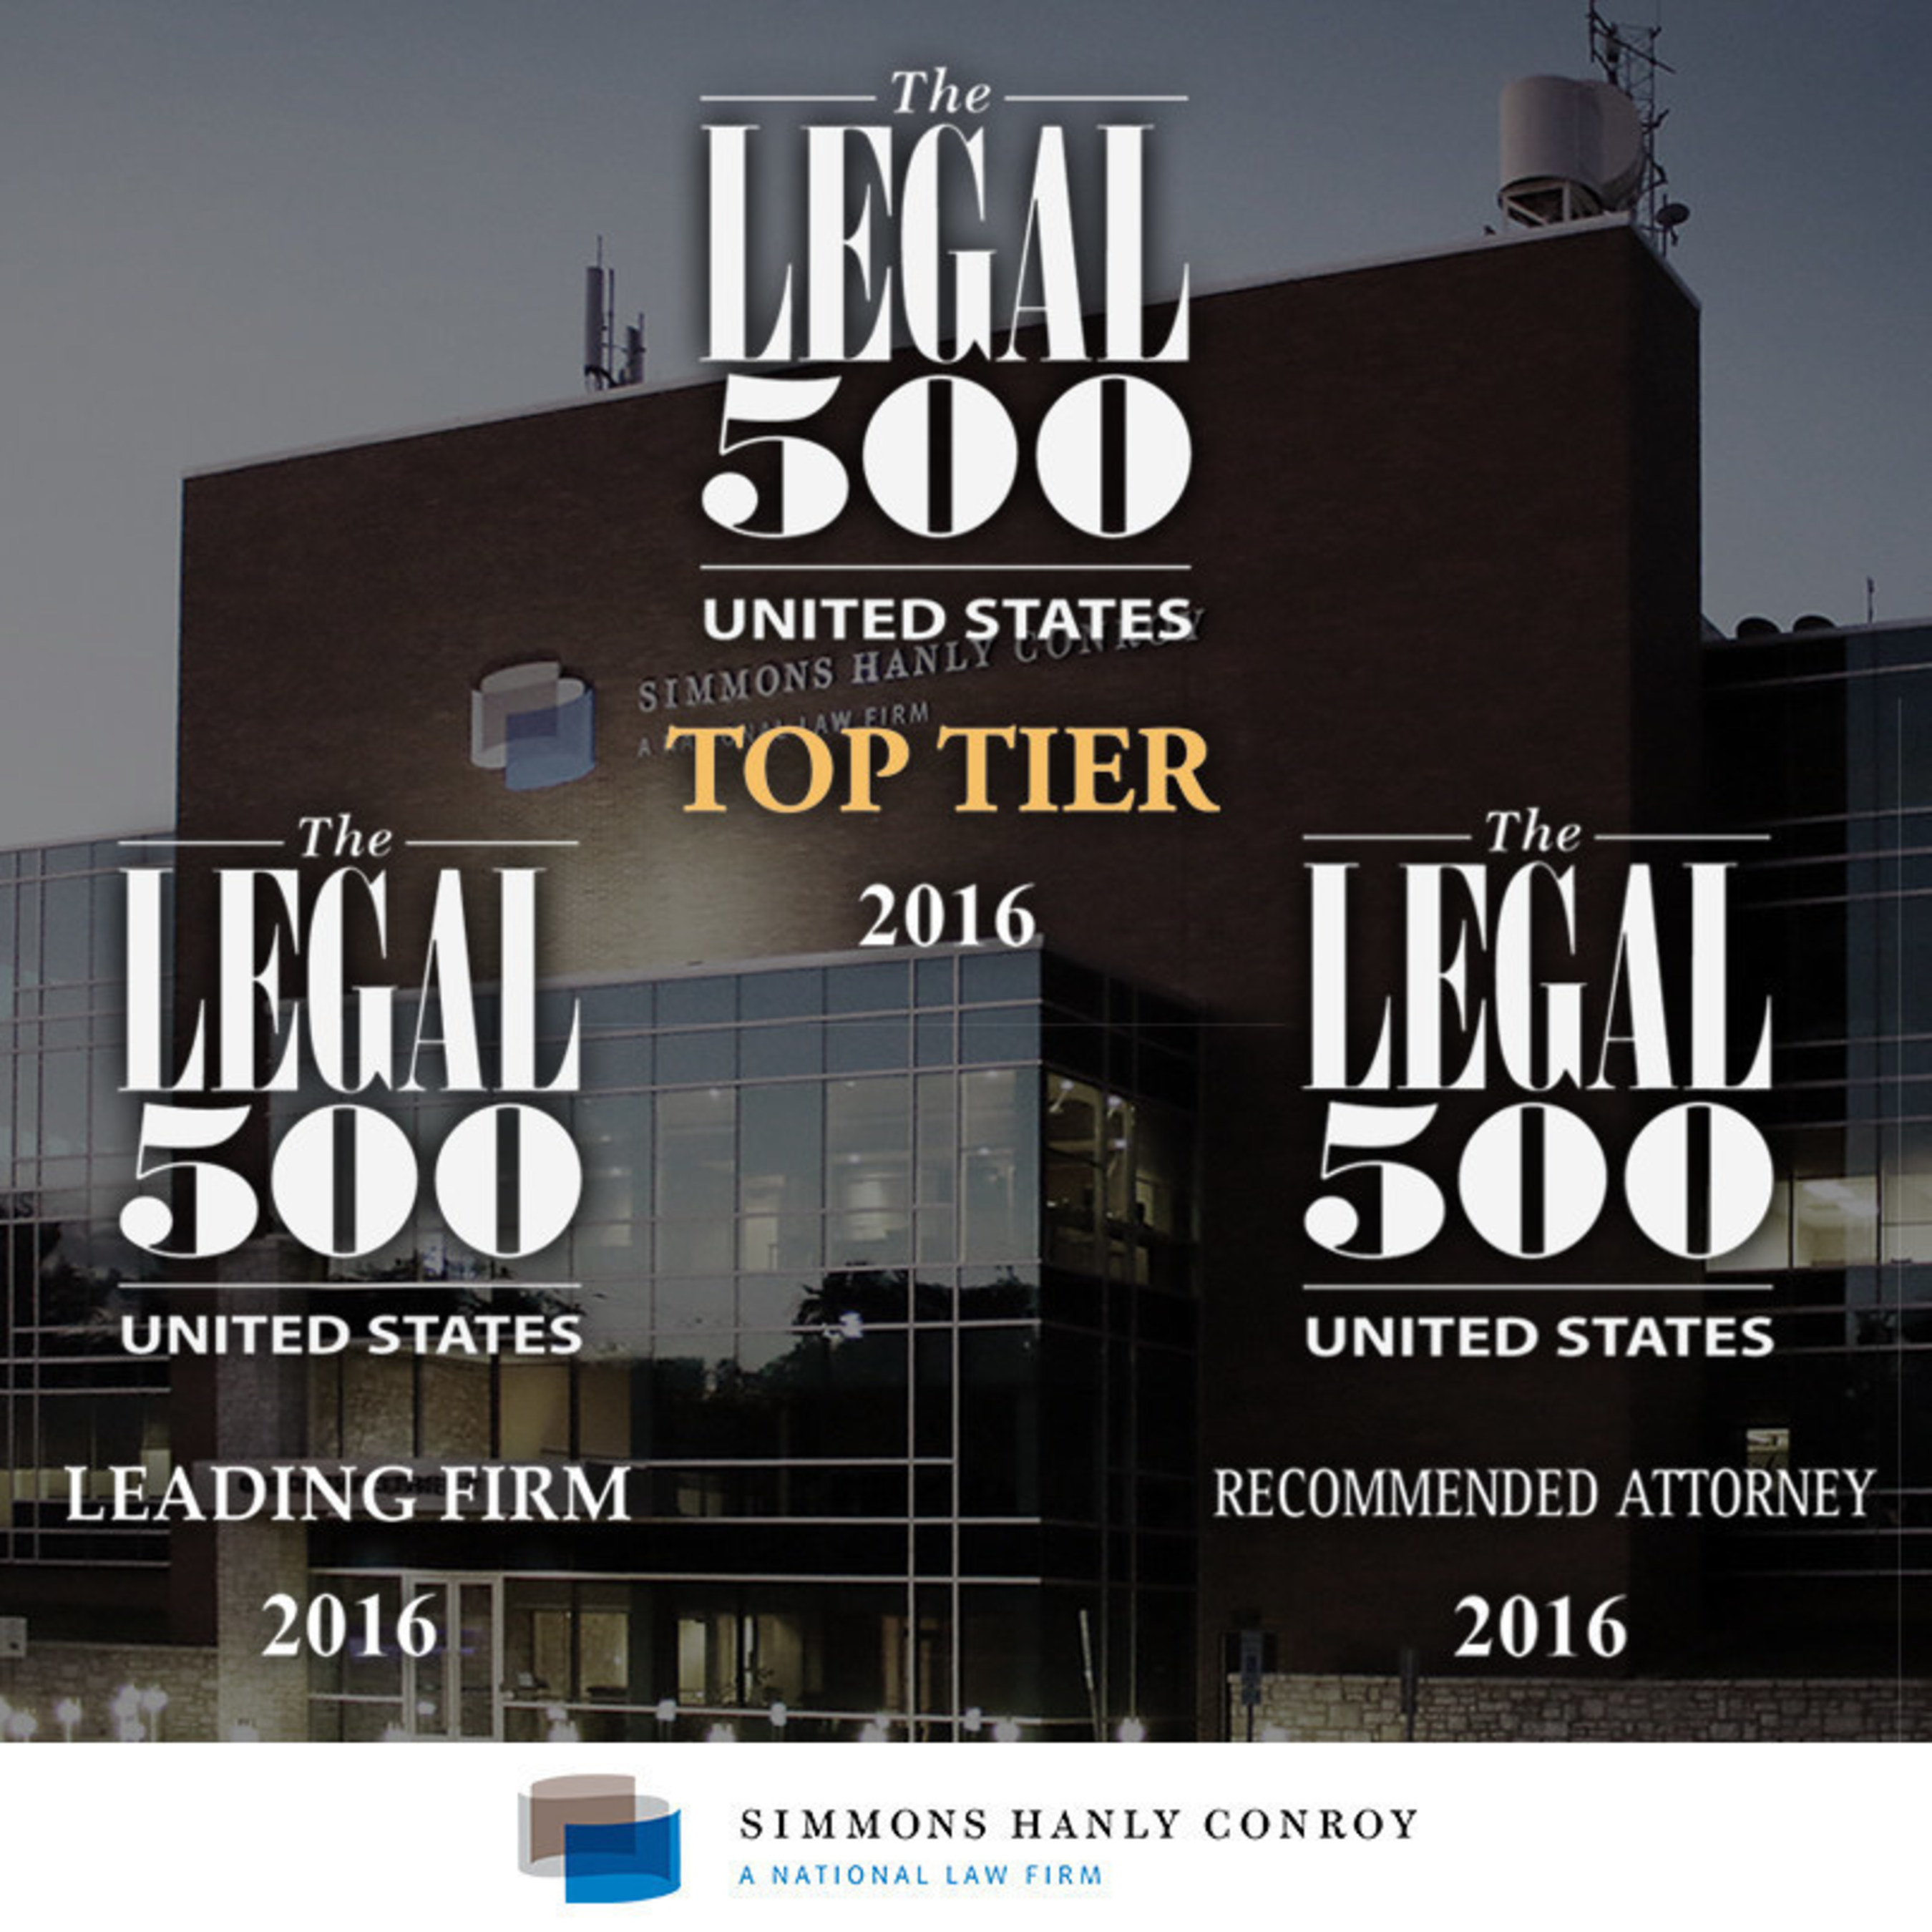 Simmons_Hanly_Conroy___Legal_500